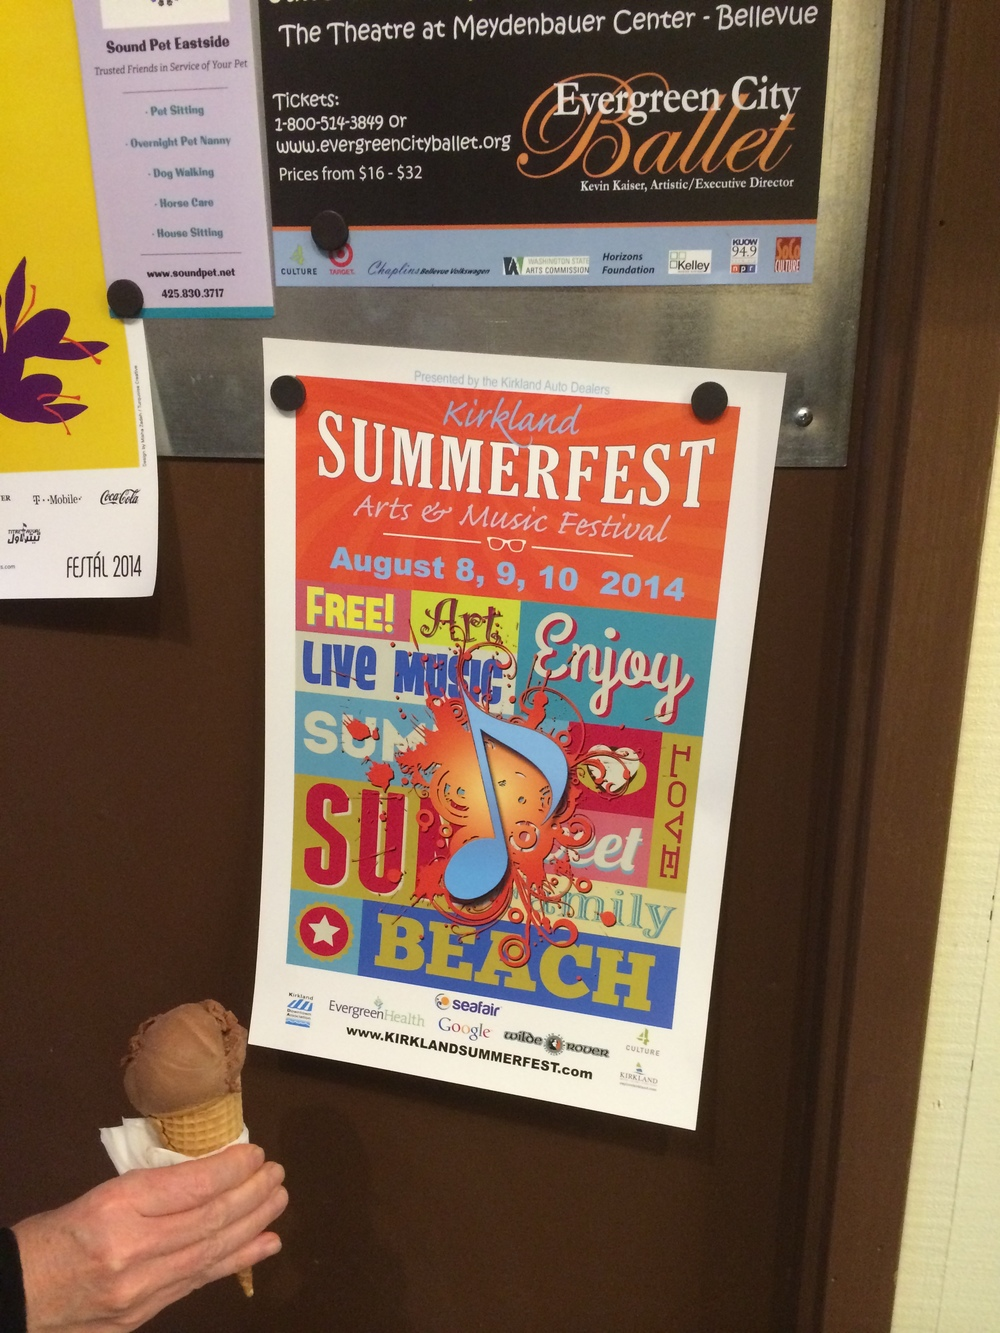 Summerfest post spotted at Sirena Gelato on Park Lane.